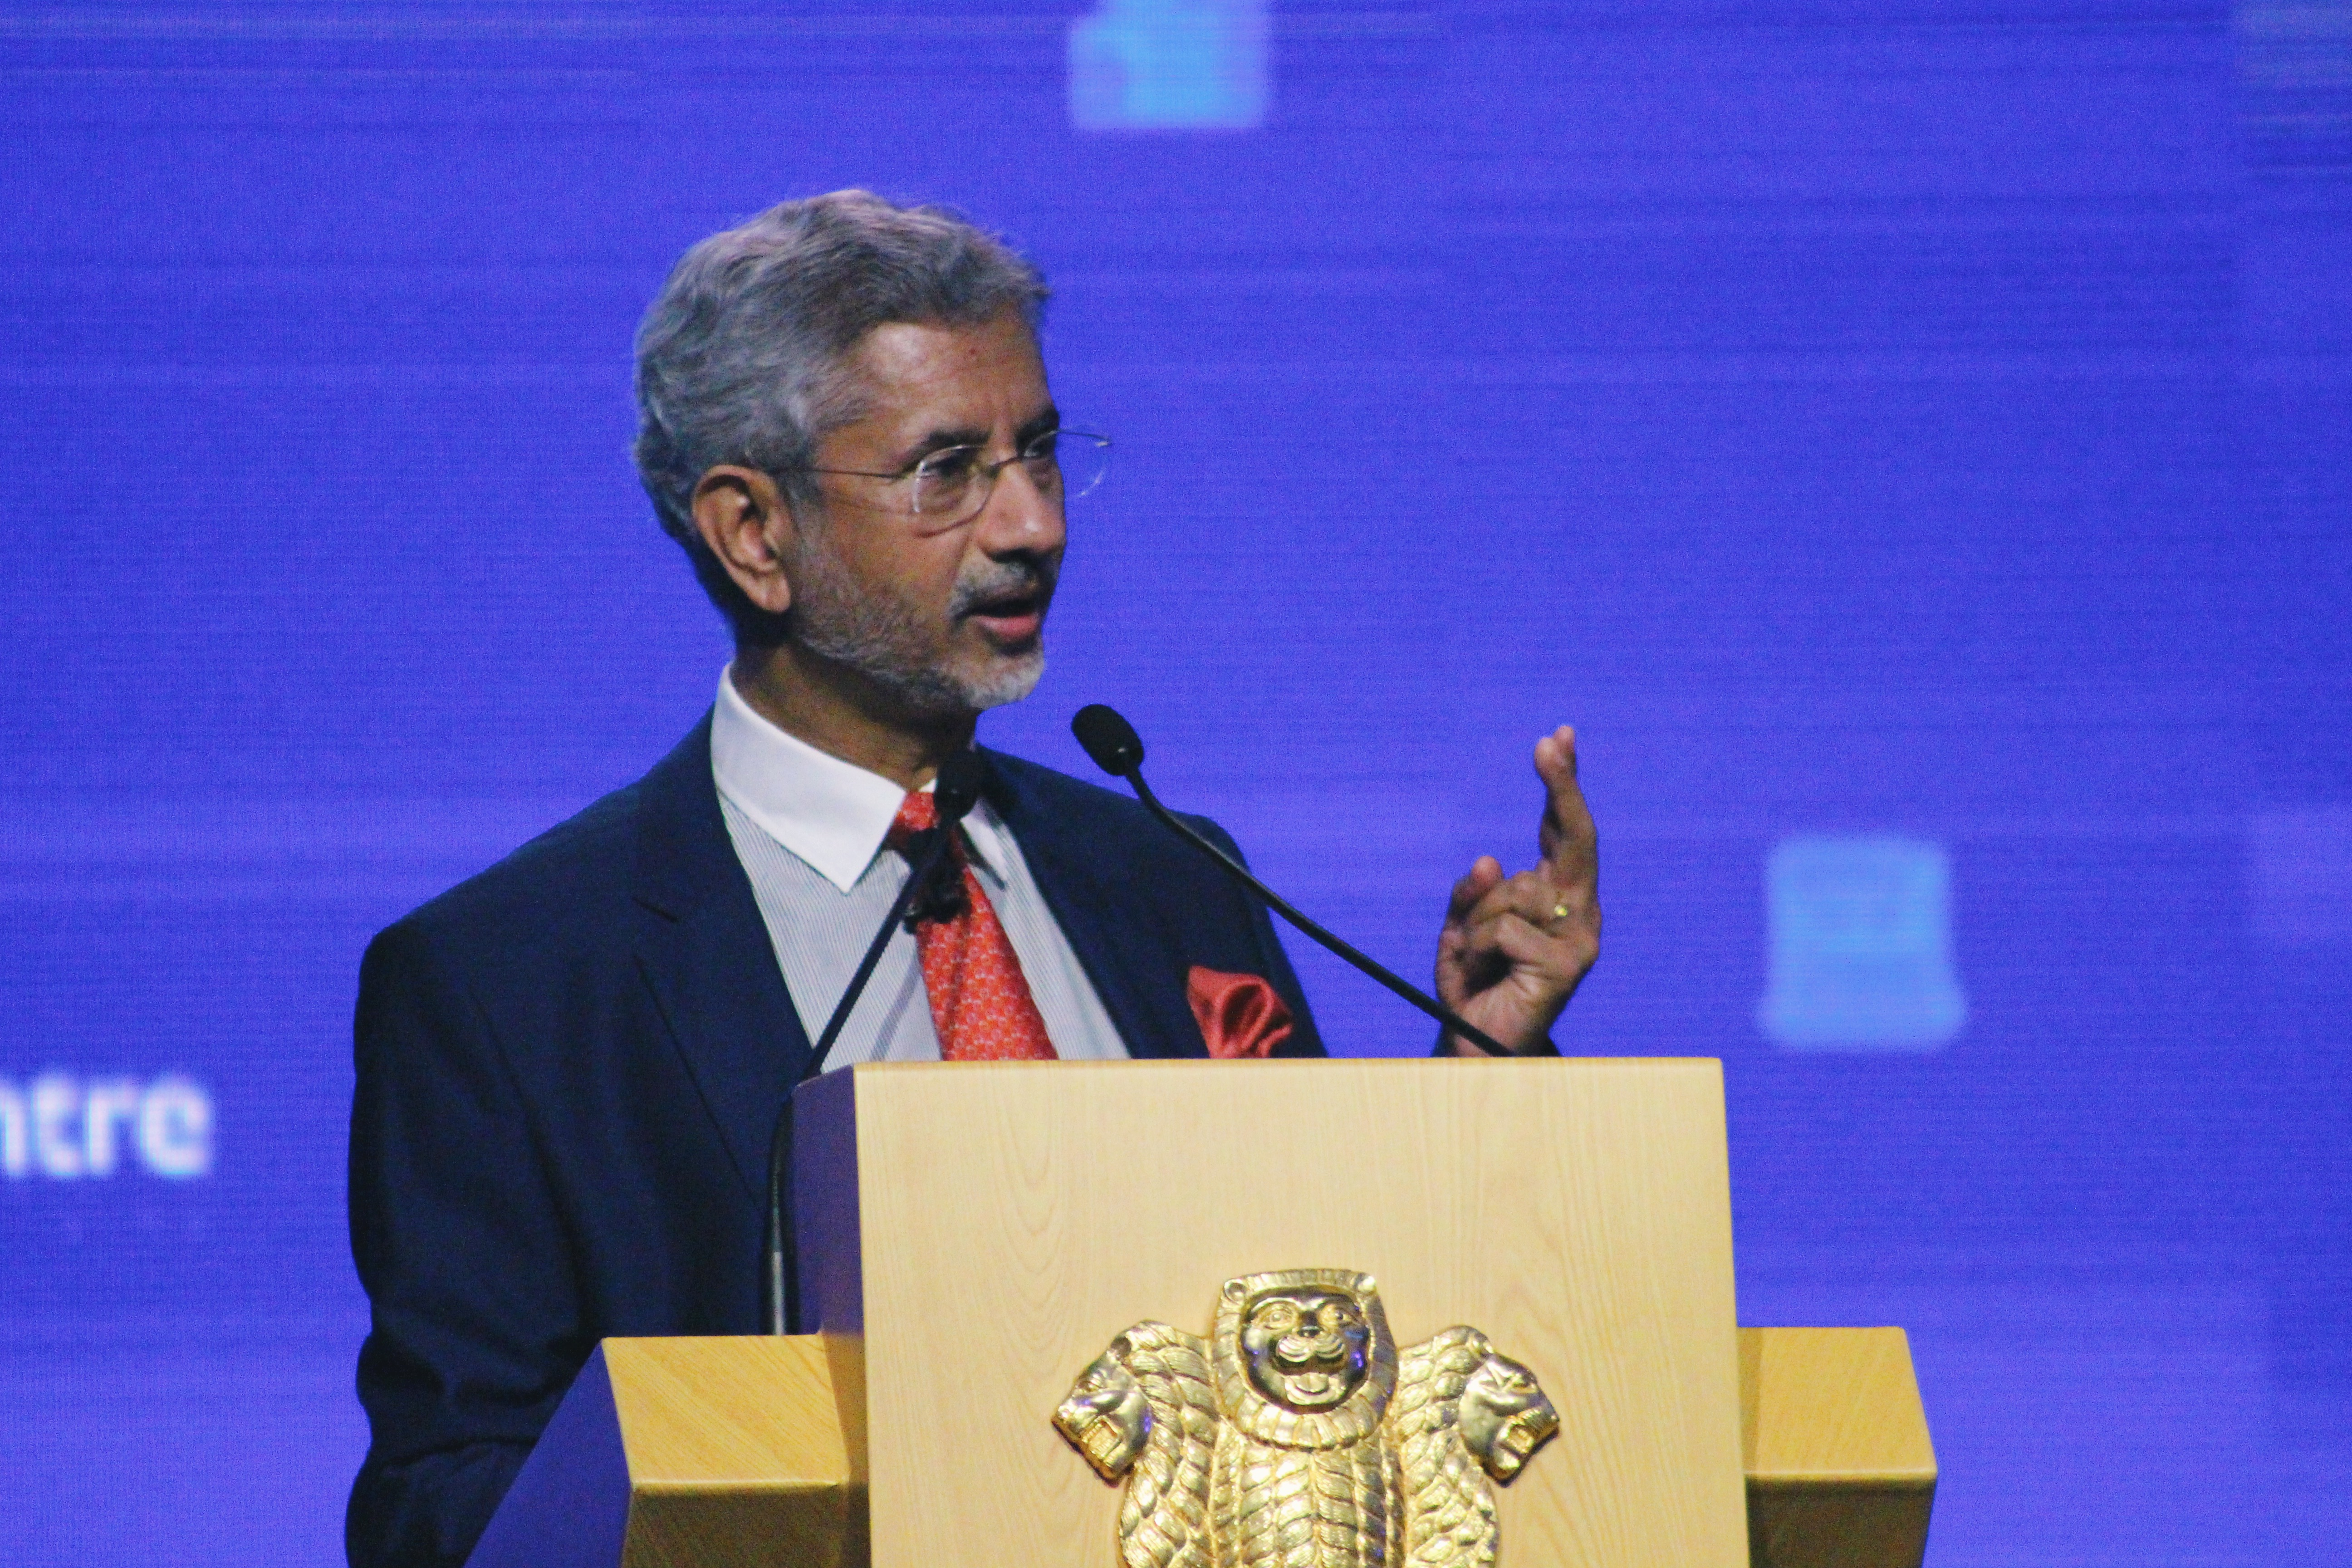 Indian External Affairs Minister S Jaishankar speaking at the India-Singapore: The Next Phase business and innovation summit. Photo courtesy: Connected to India